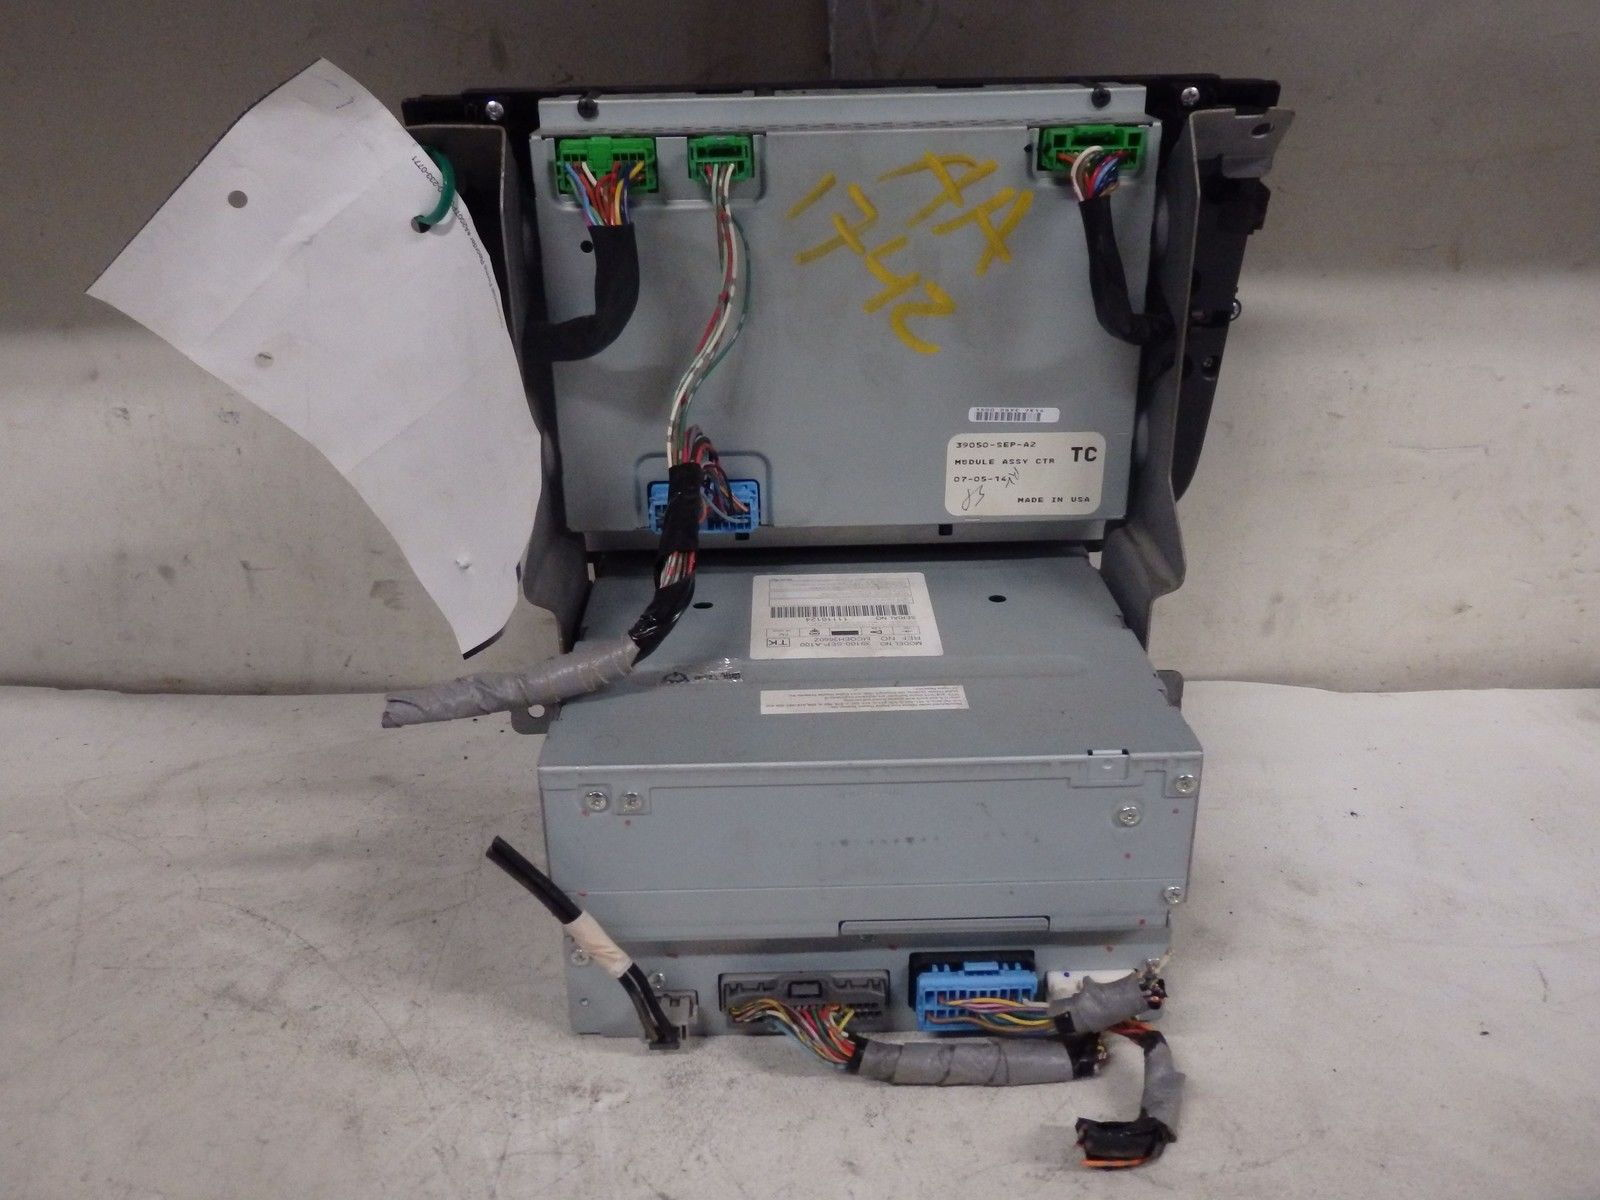 2007 Head Unit 2005 Tl Base 944145 moreover Diy Throttle Plate Cleaning 873958 as well Hfl Bluetooth Issue 887977 in addition 1996 Acura Tl Fuse Box furthermore 2007 Acura Tl Navigation System 840204. on hfl acura tl problems